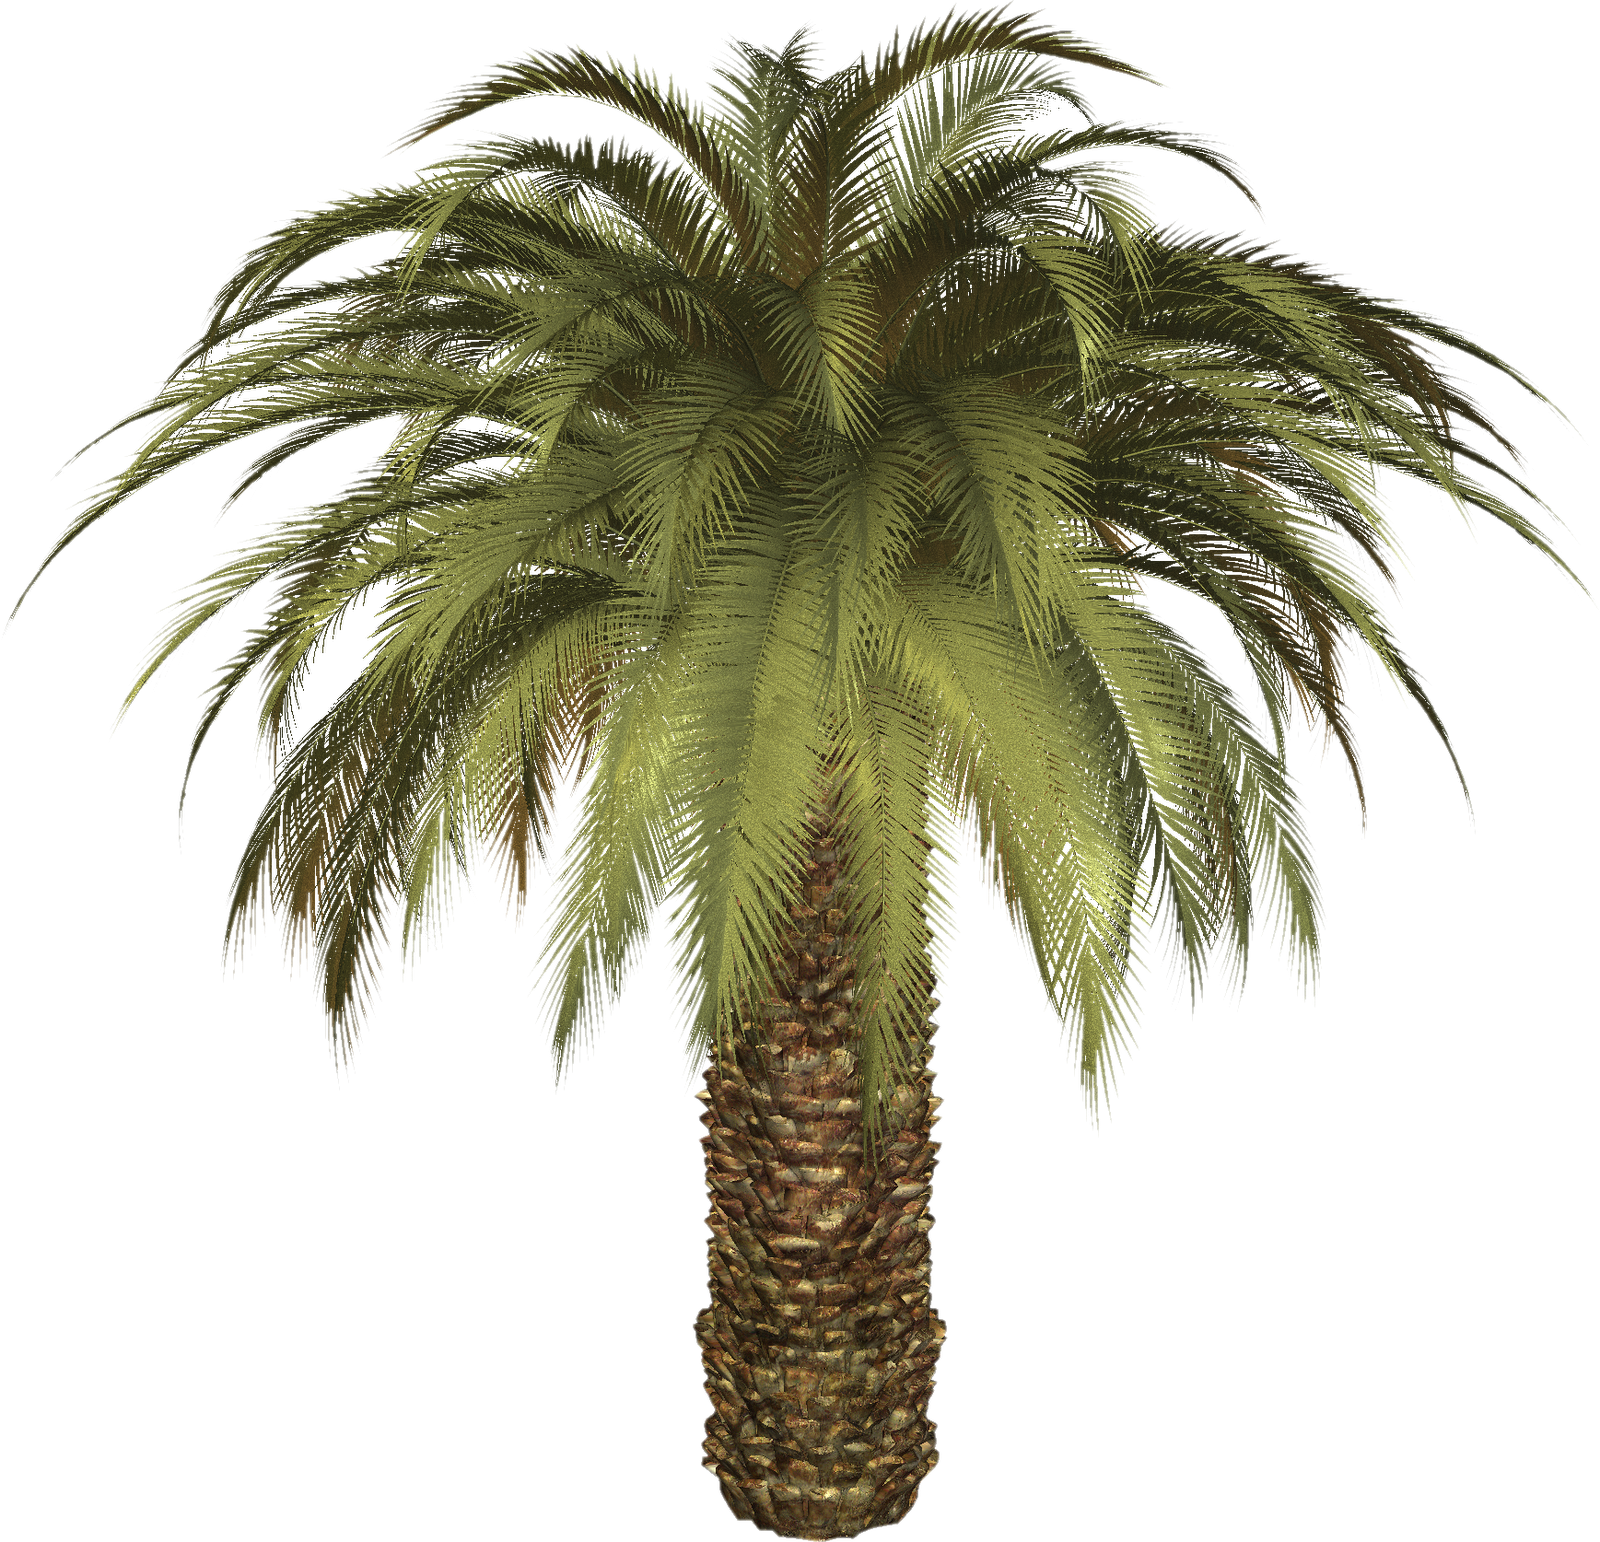 Birds eye view palm trees png. Tree images download free